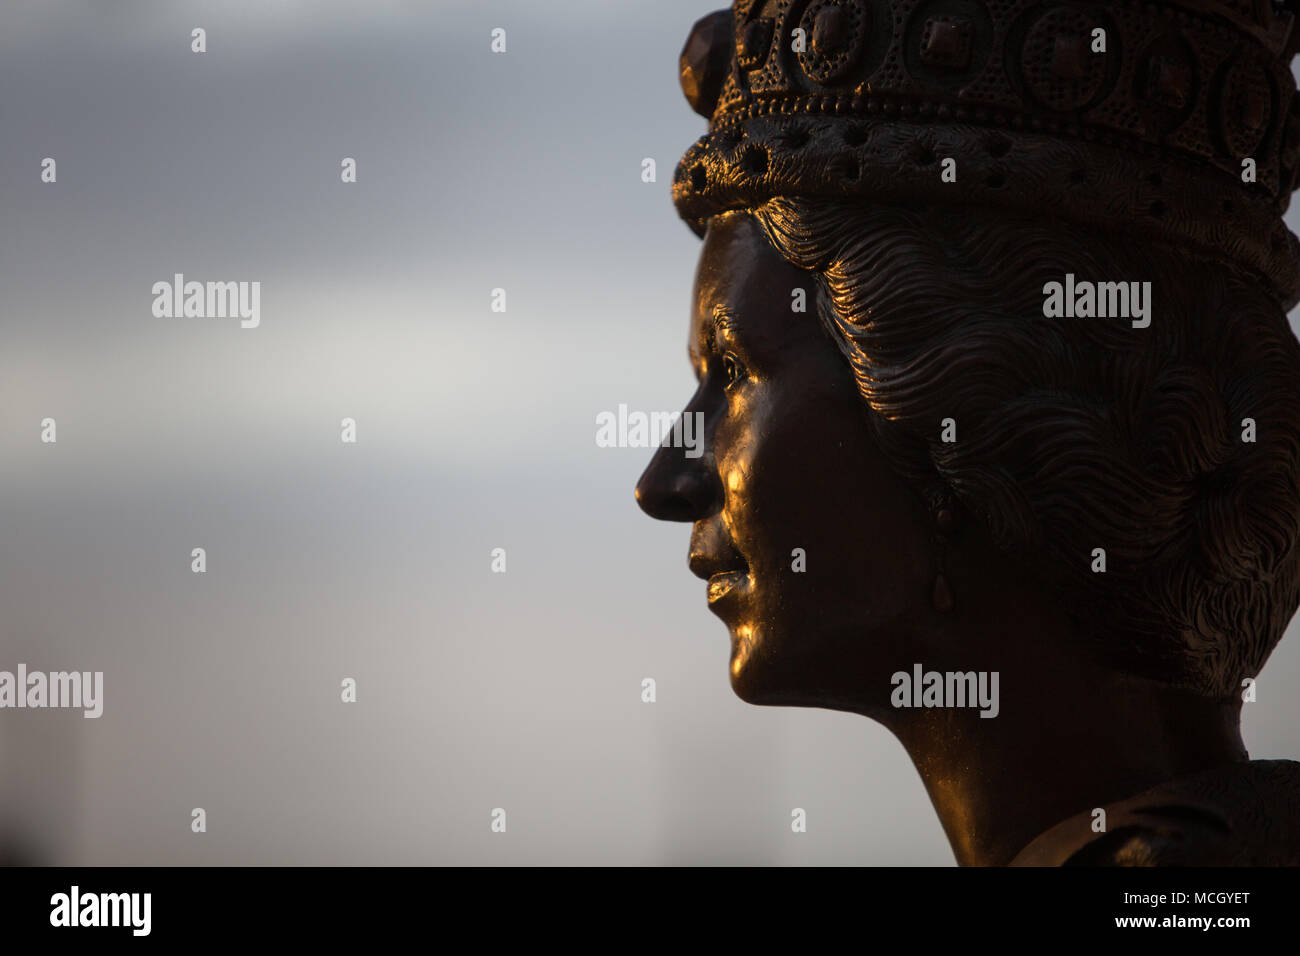 Portrait bust of Queen Elizabeth II, in Port Moresby, Papua New Guinea, on 4 December 2017. Stock Photo